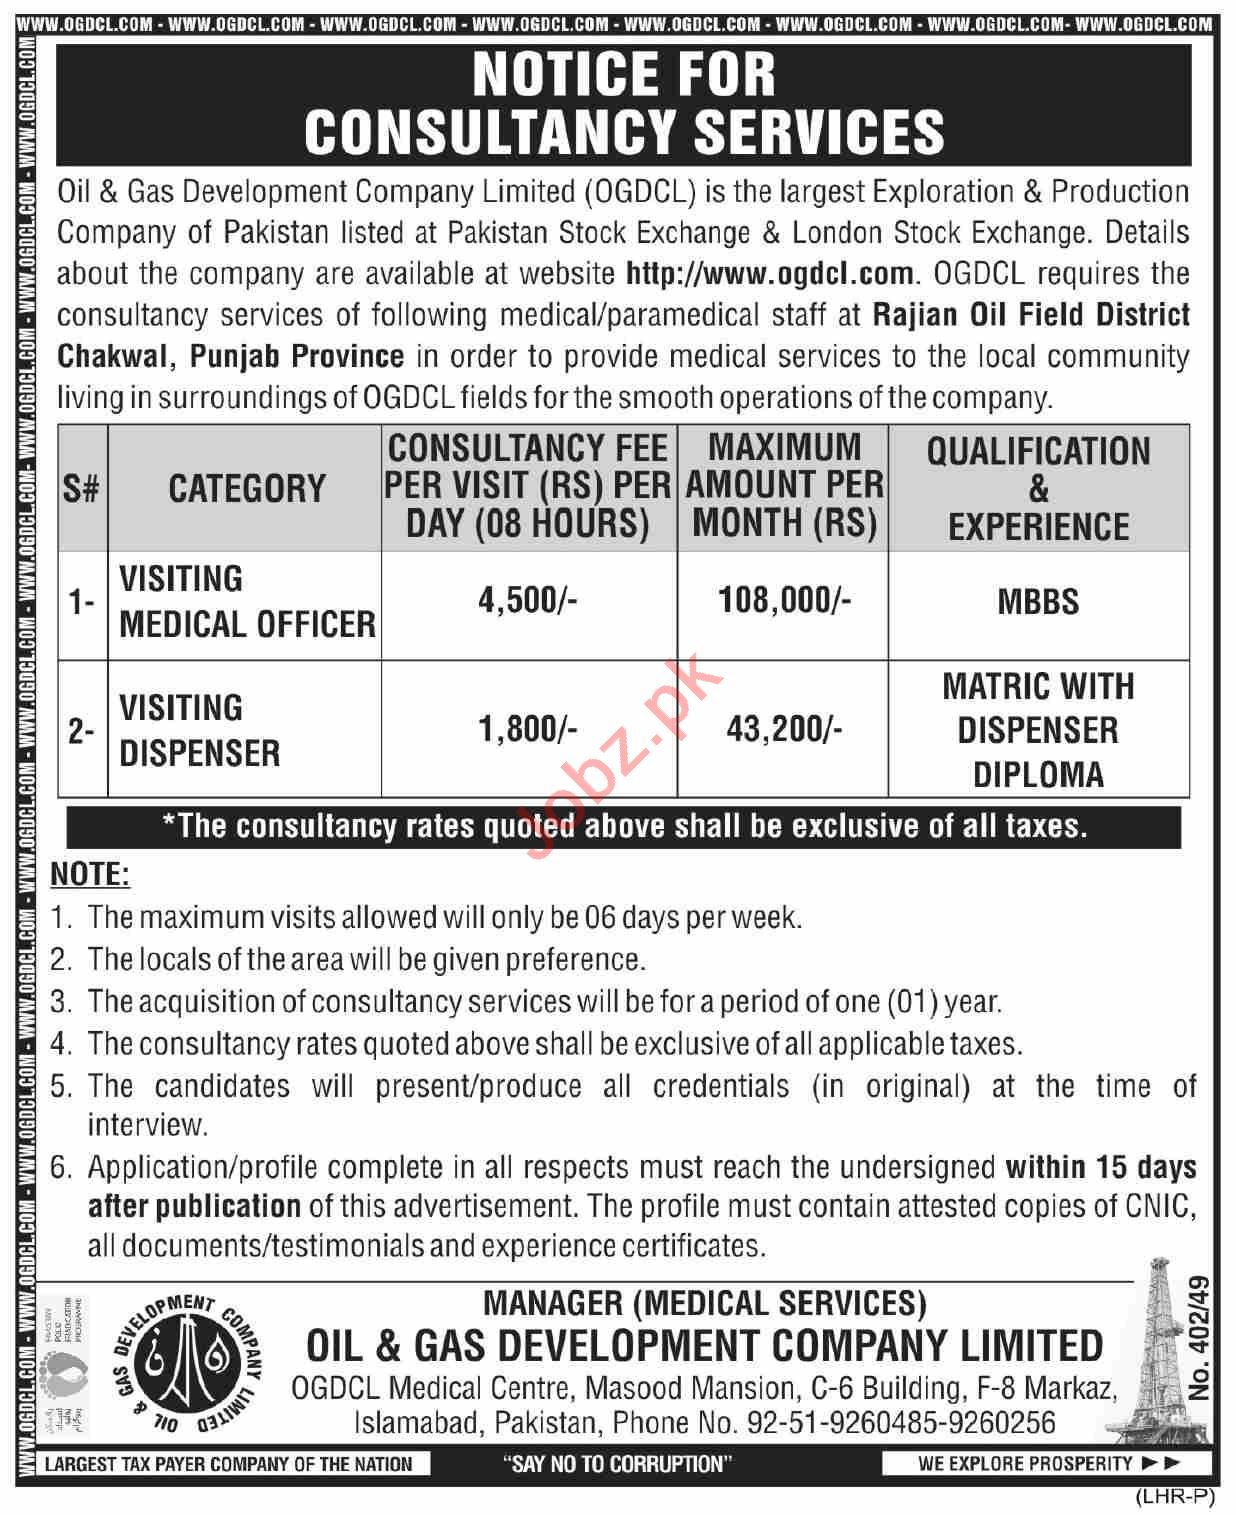 OGDCL Rajian Oil Field District Chakwal Jobs 2021 for Doctor